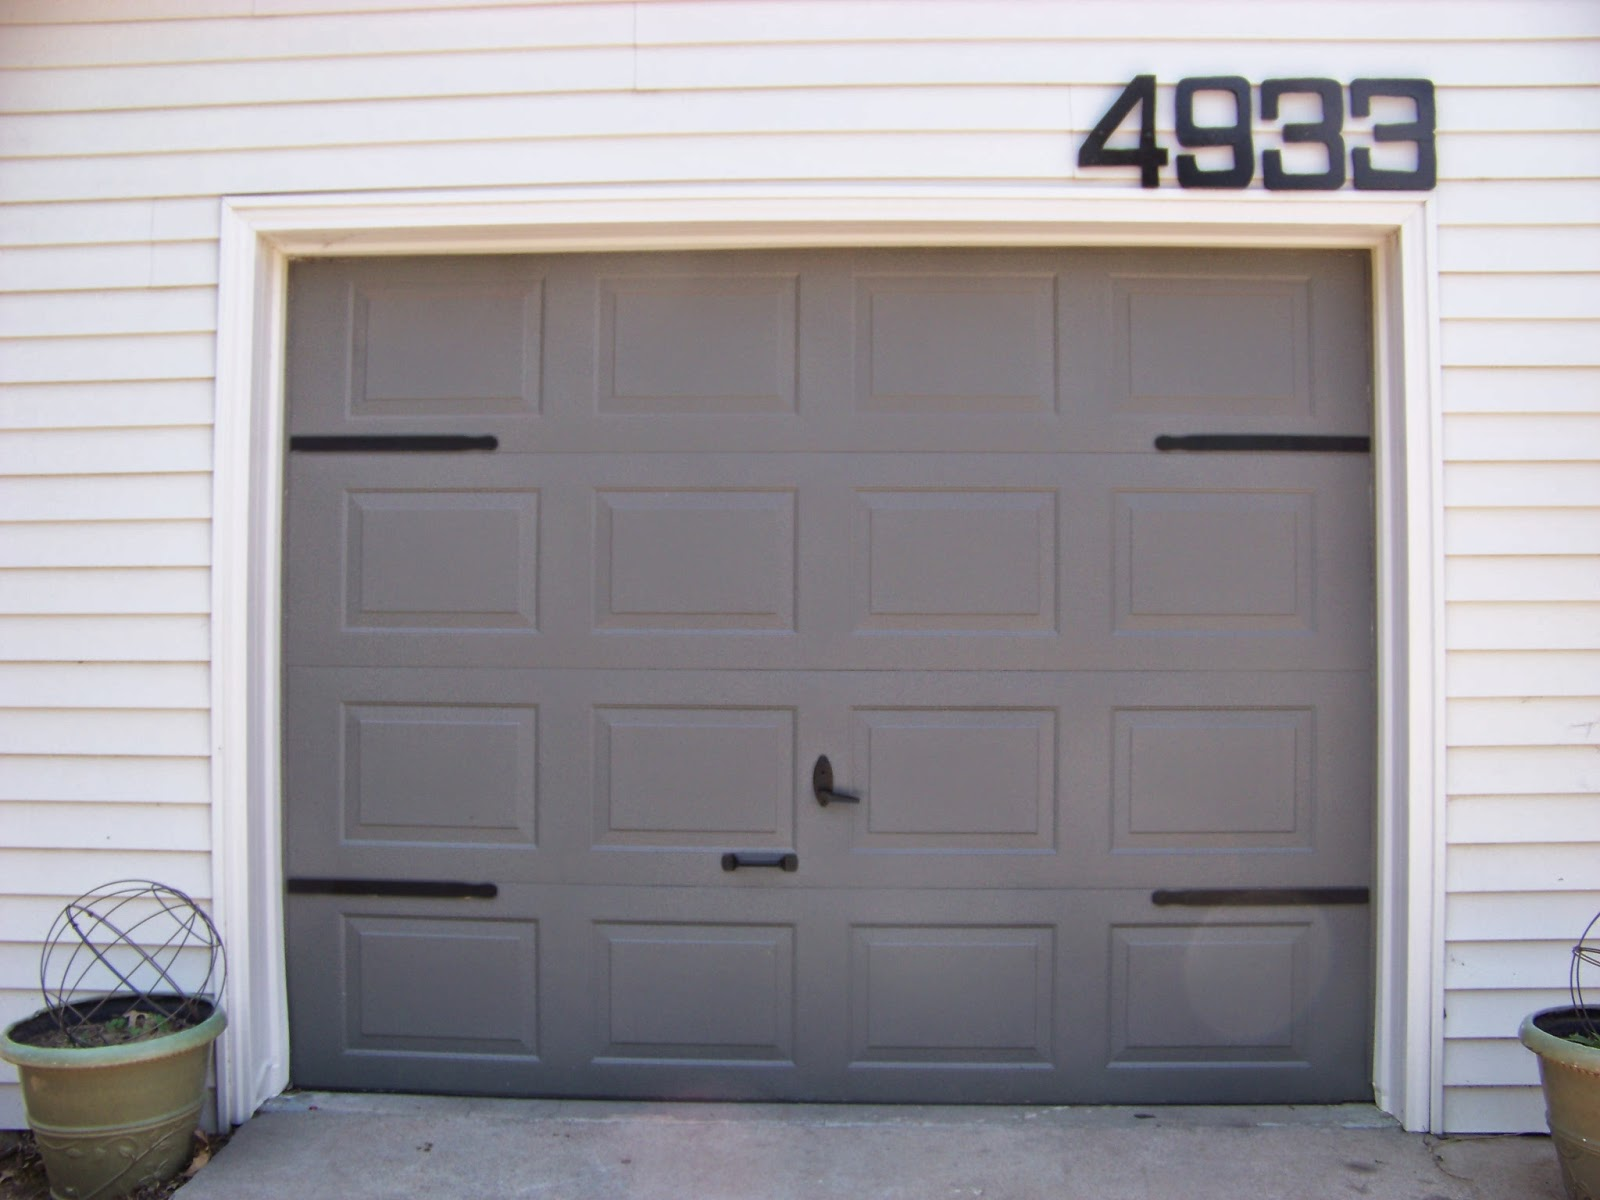 Faux wood painted garage doors -  5 Diy Garage Door Update Faux Hinges Using Paint Stir Sticks The Sunset Lane